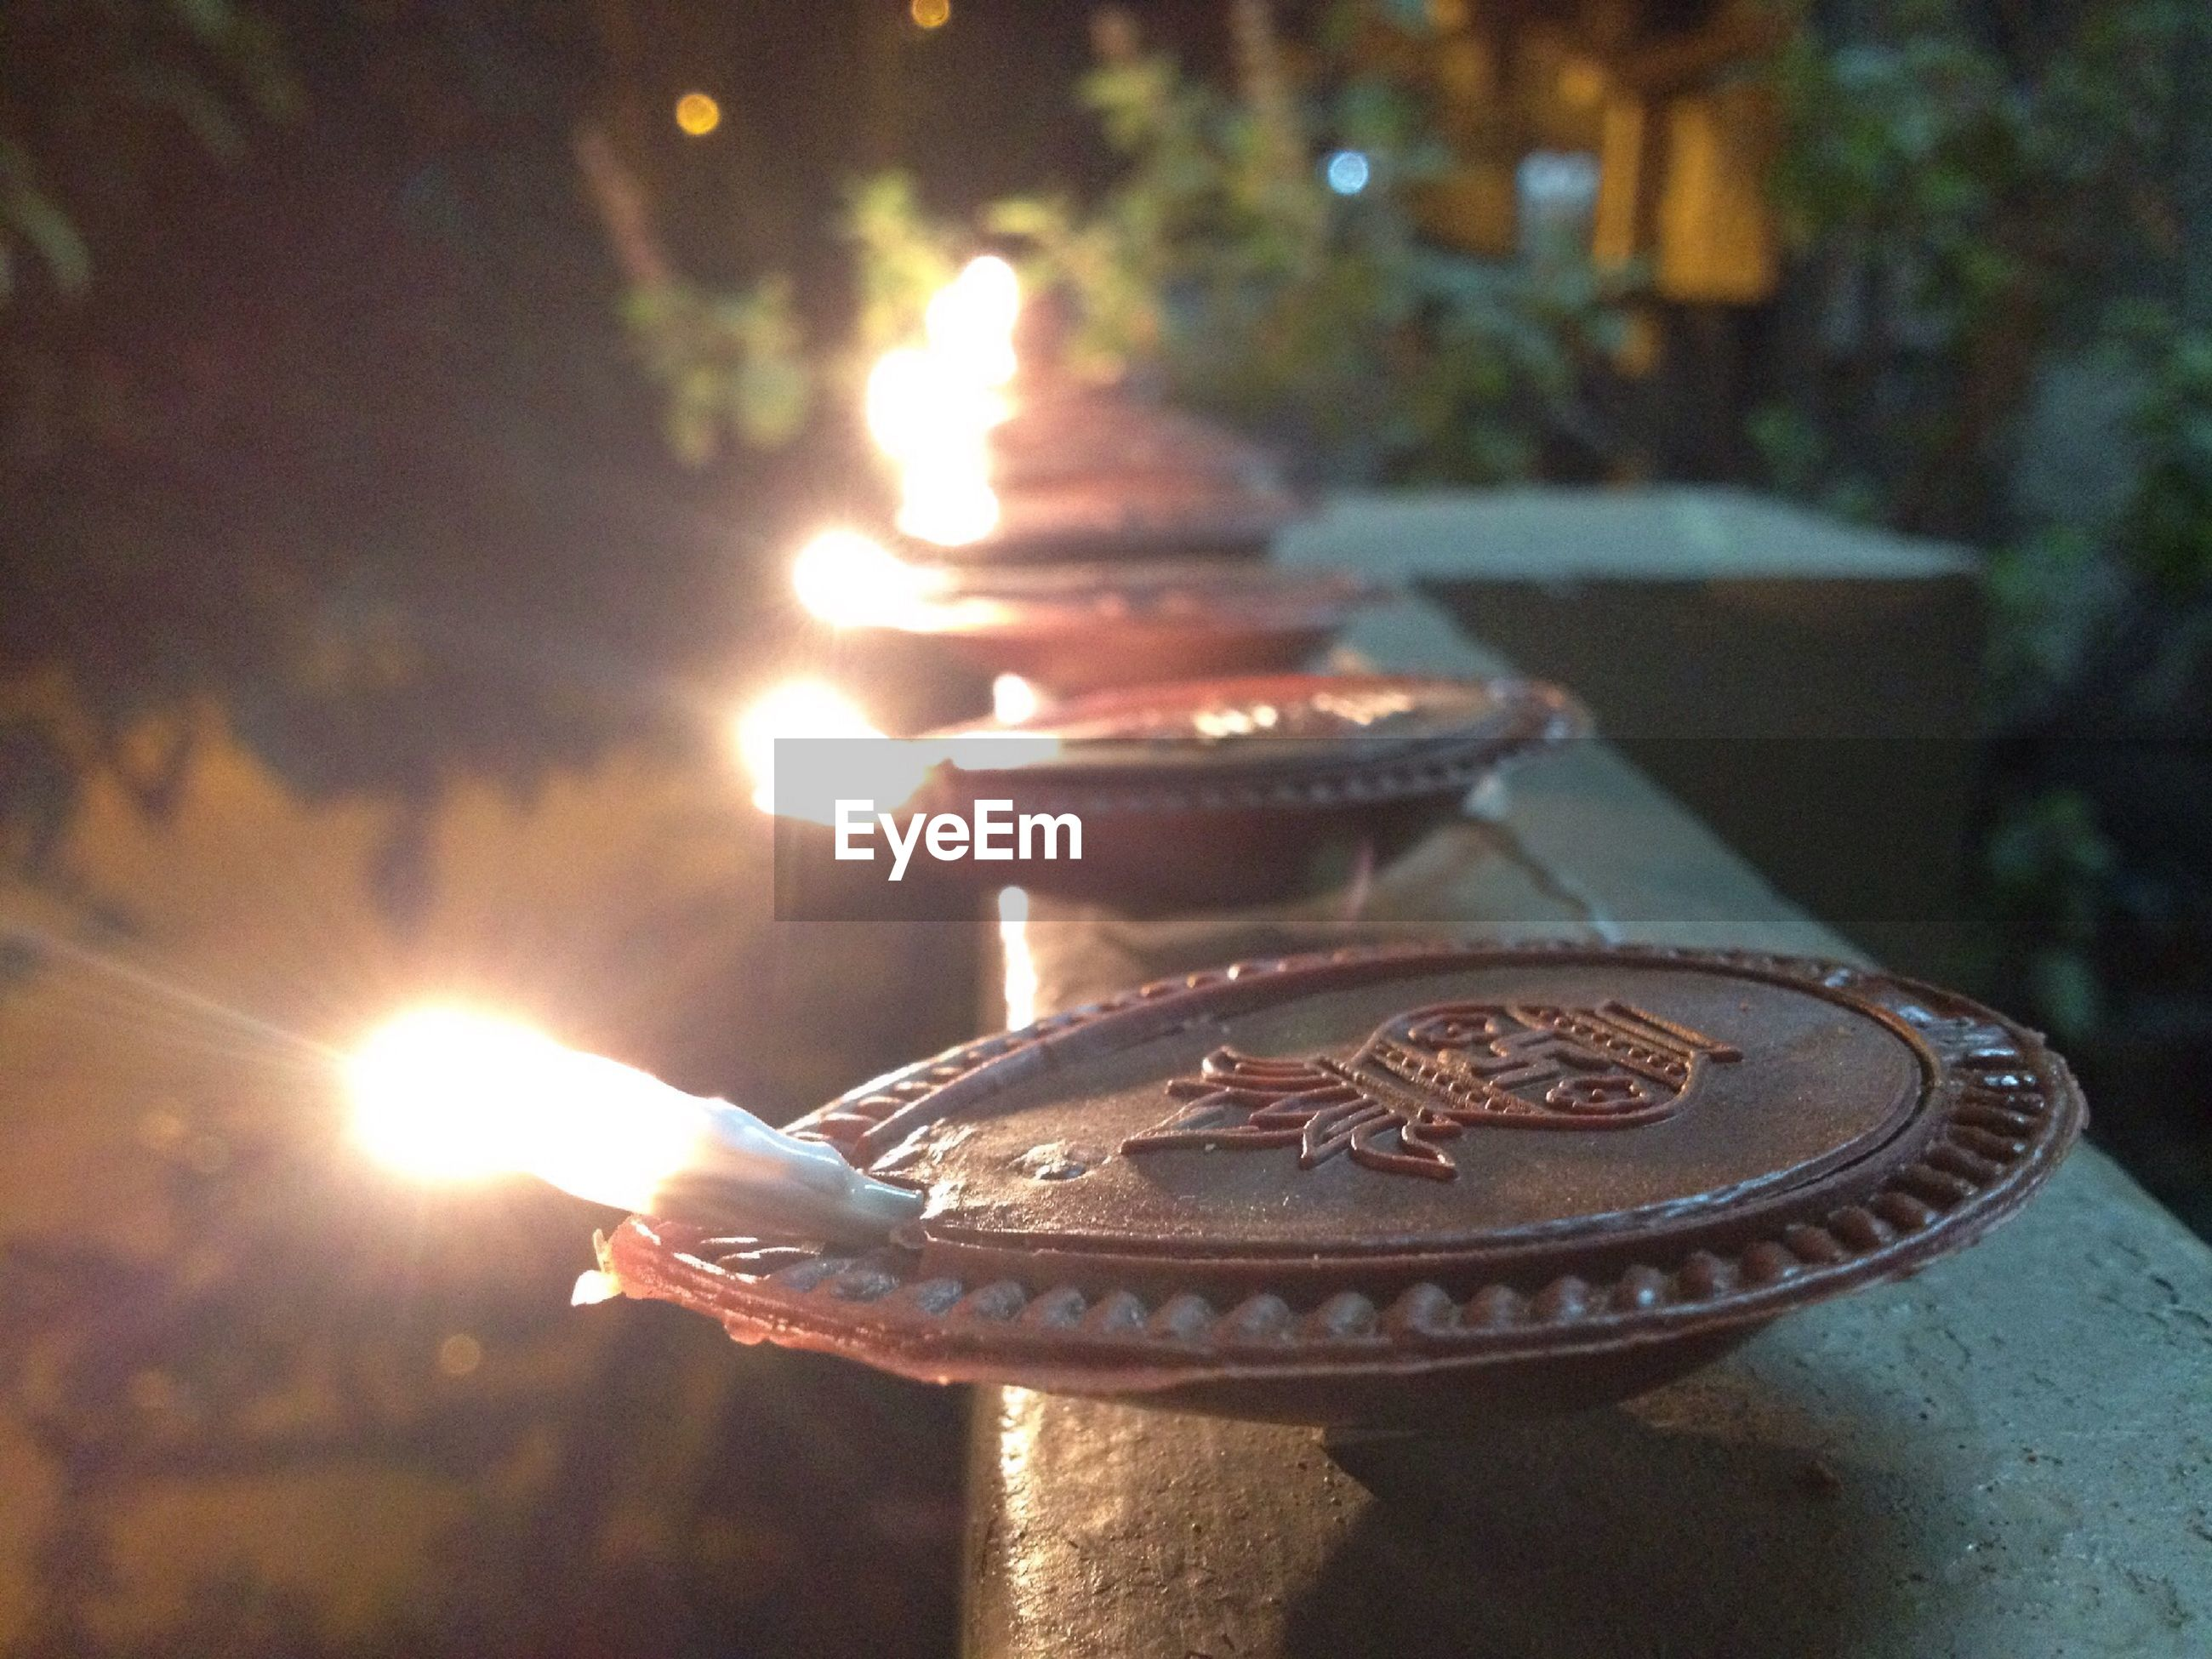 illuminated, close-up, focus on foreground, flame, burning, glowing, indoors, candle, religion, fire - natural phenomenon, no people, night, spirituality, metal, heat - temperature, orange color, still life, shiny, selective focus